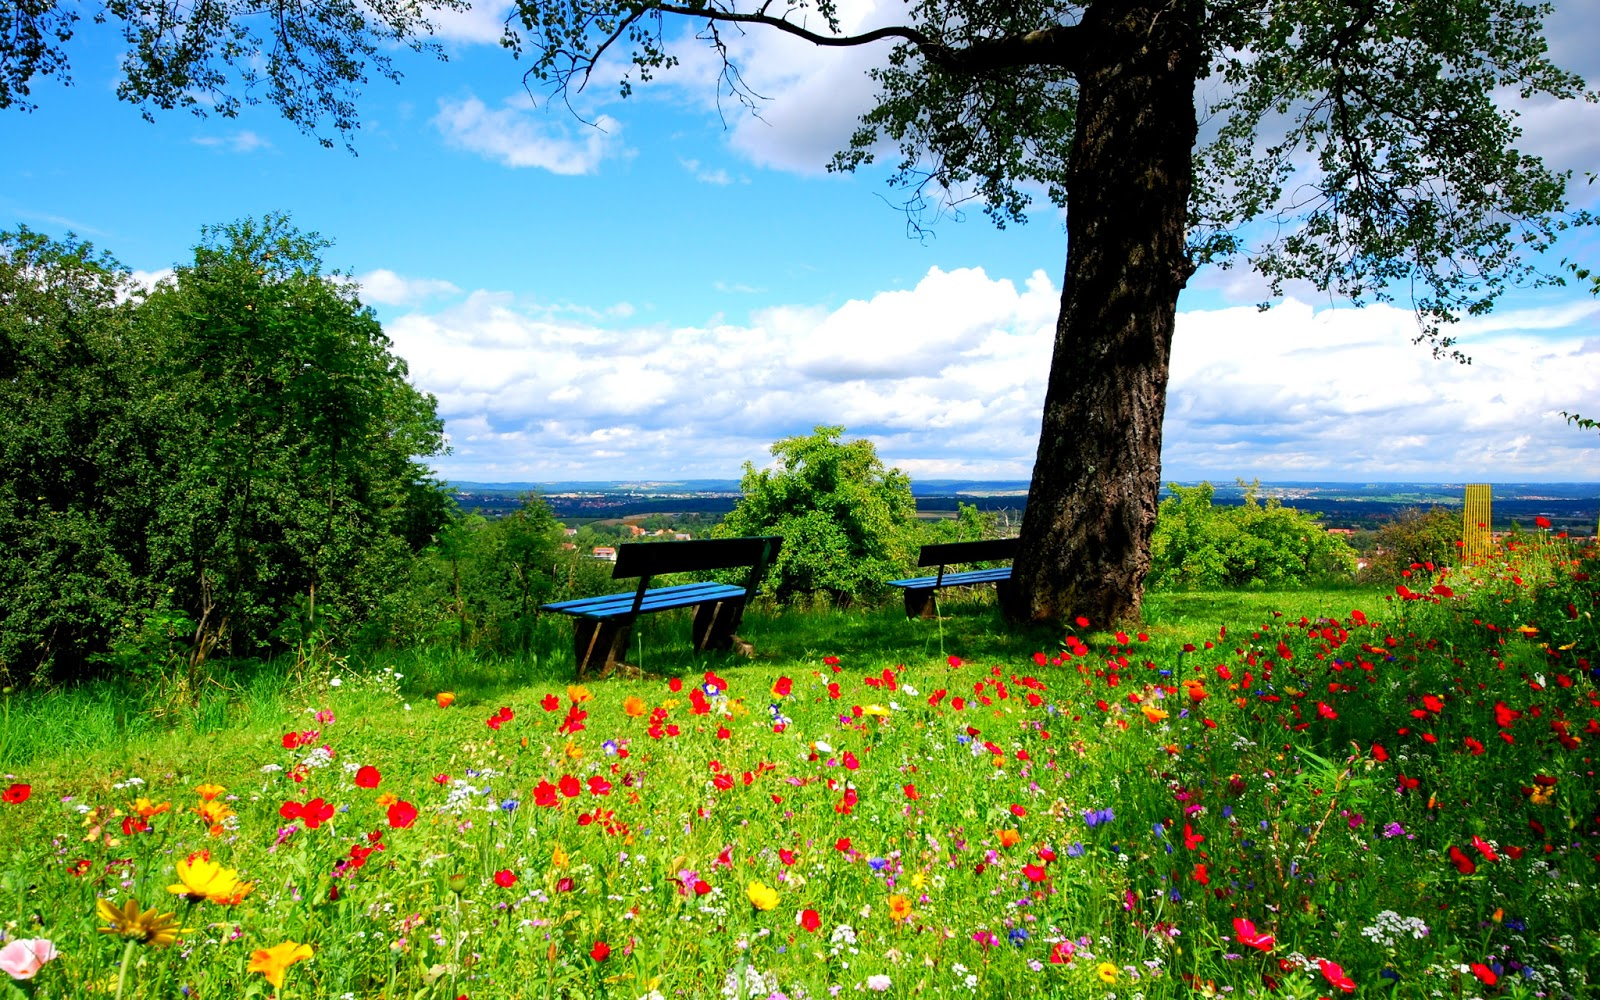 Spring Wallpapers HD | HD Wallpapers - Blog